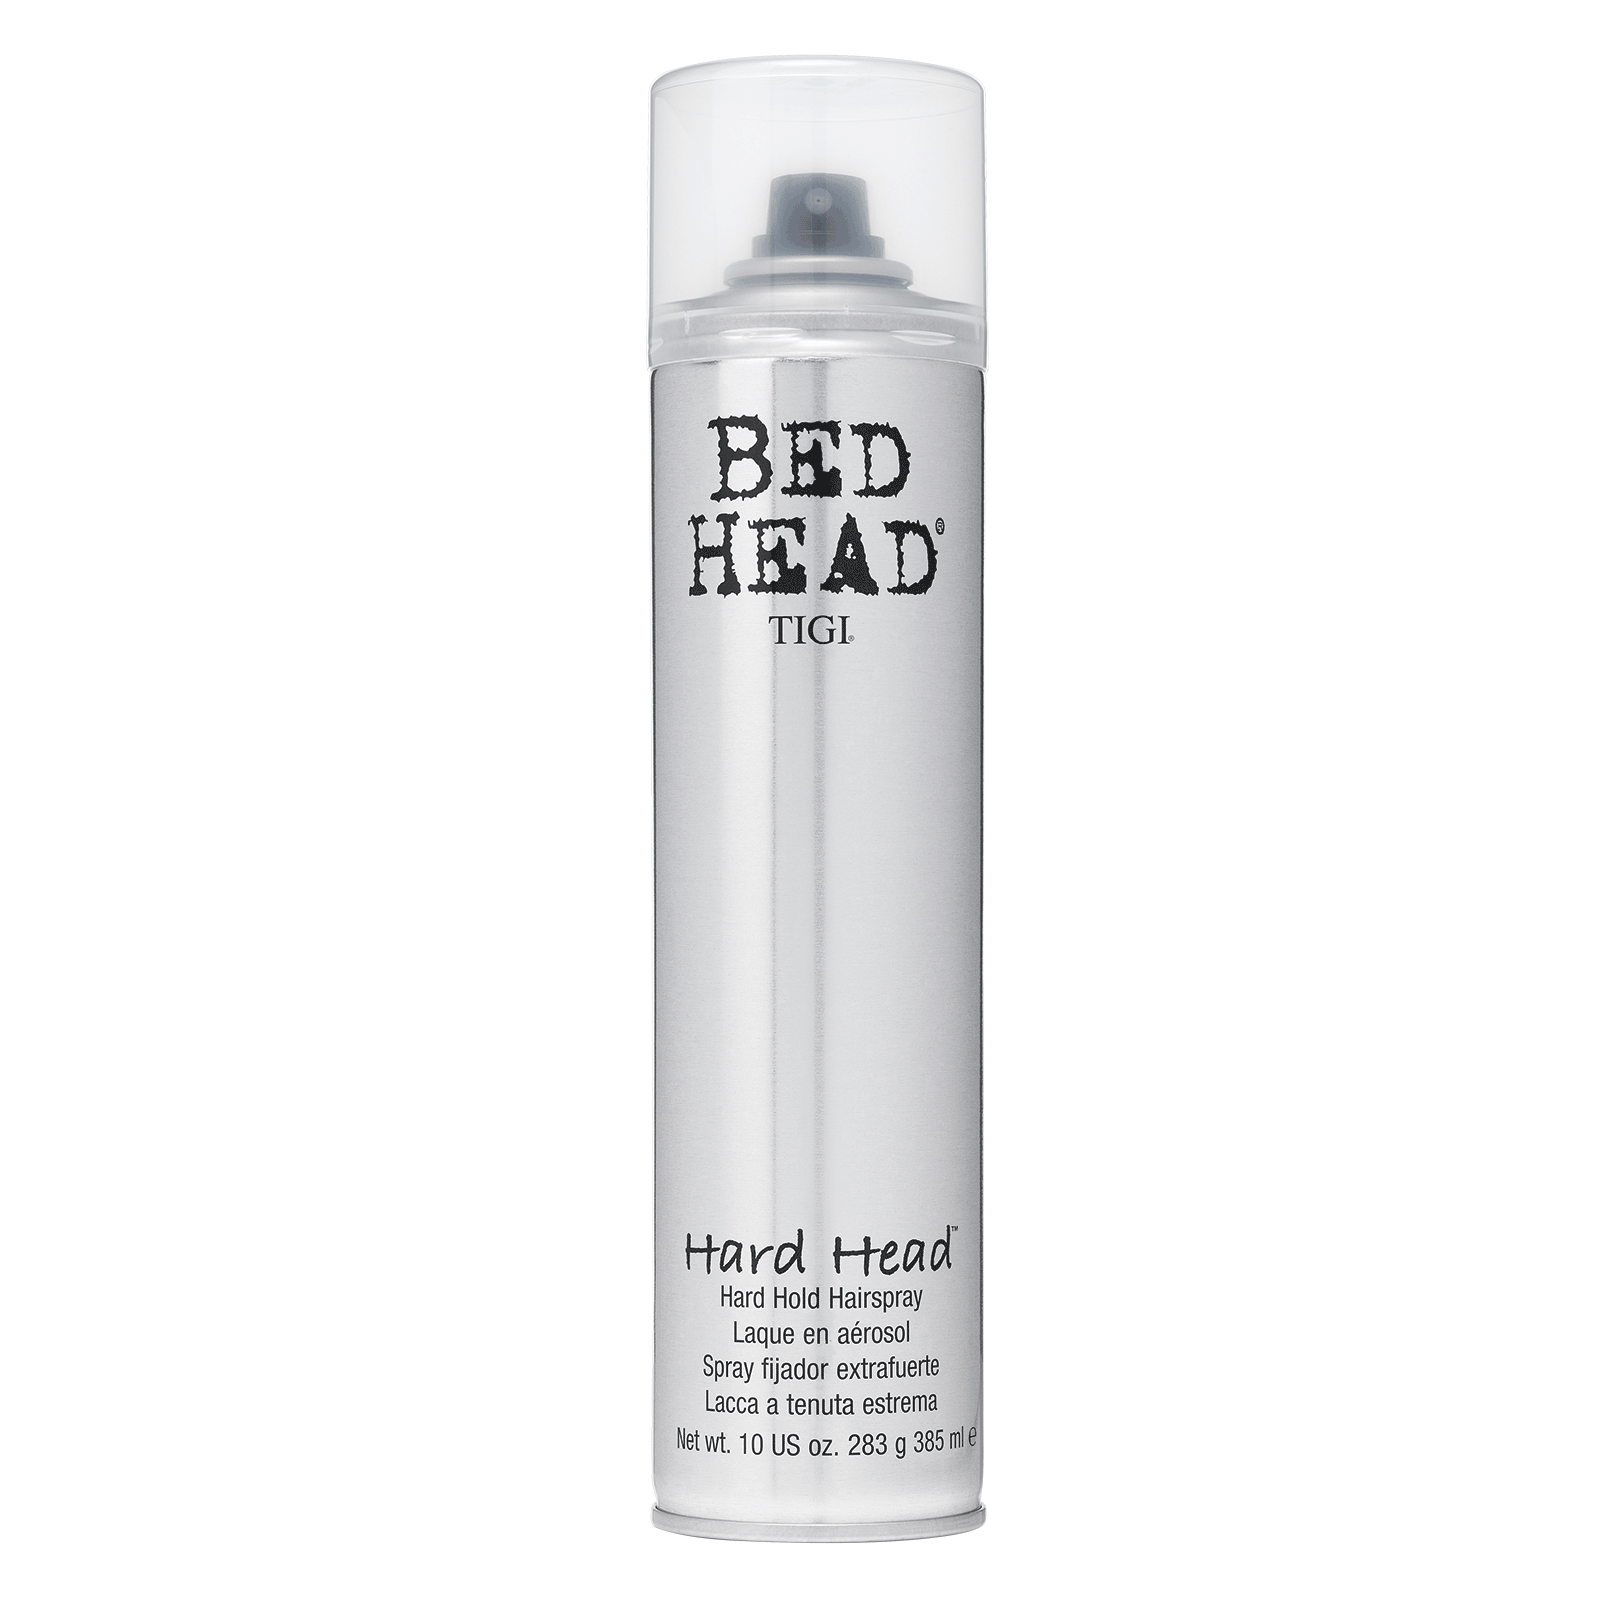 Bed Head - Hard Head Hairspray VOC 55%